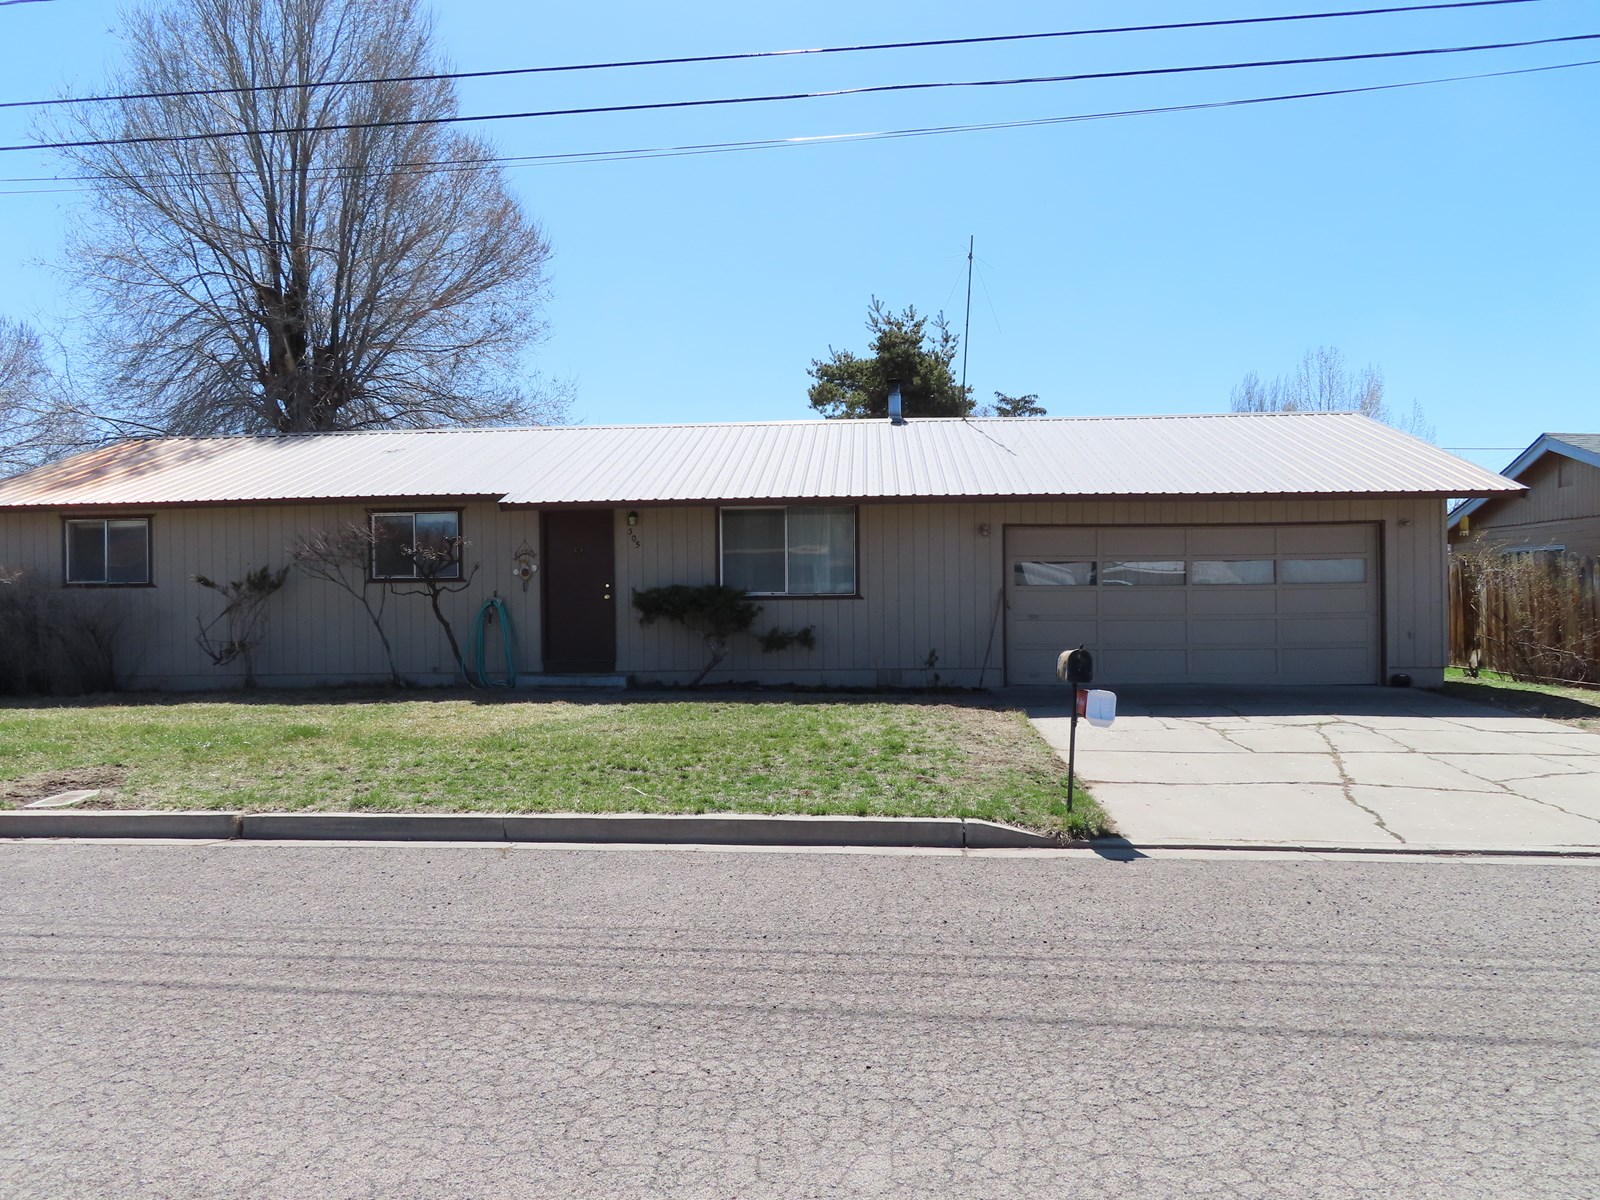 3 bed/2 bath 1144 sq.ft home for sale in Alturas, Ca.